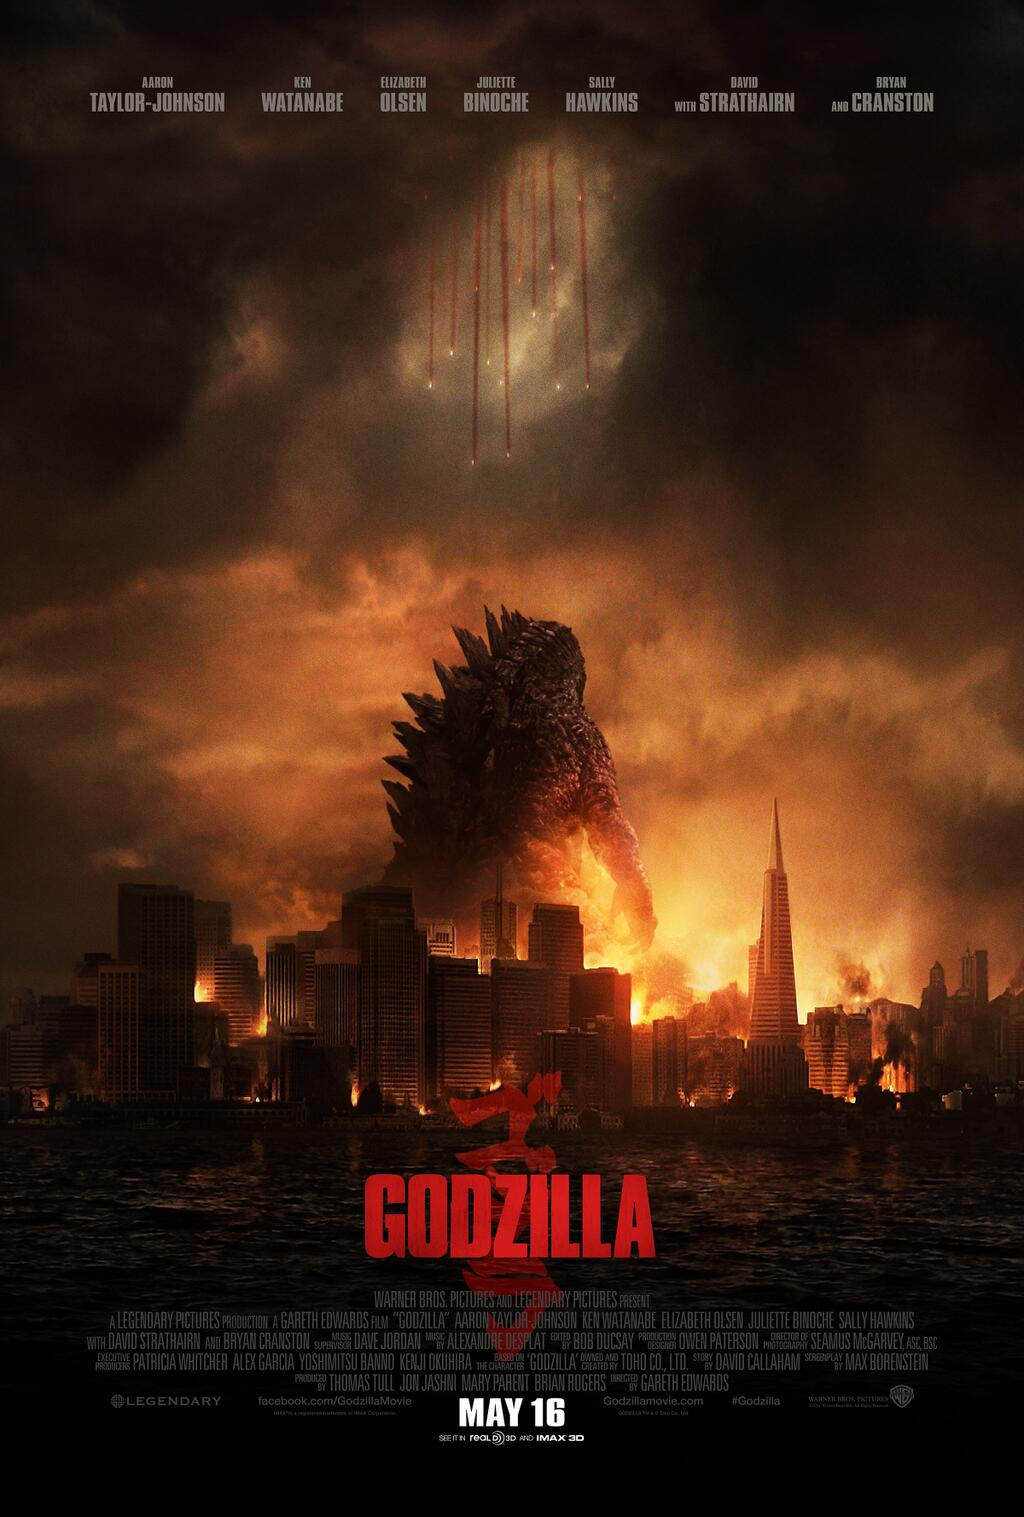 POSTER Godzilla Director- Gareth Edwards Designed by Kyle Cooper for Prologue Films